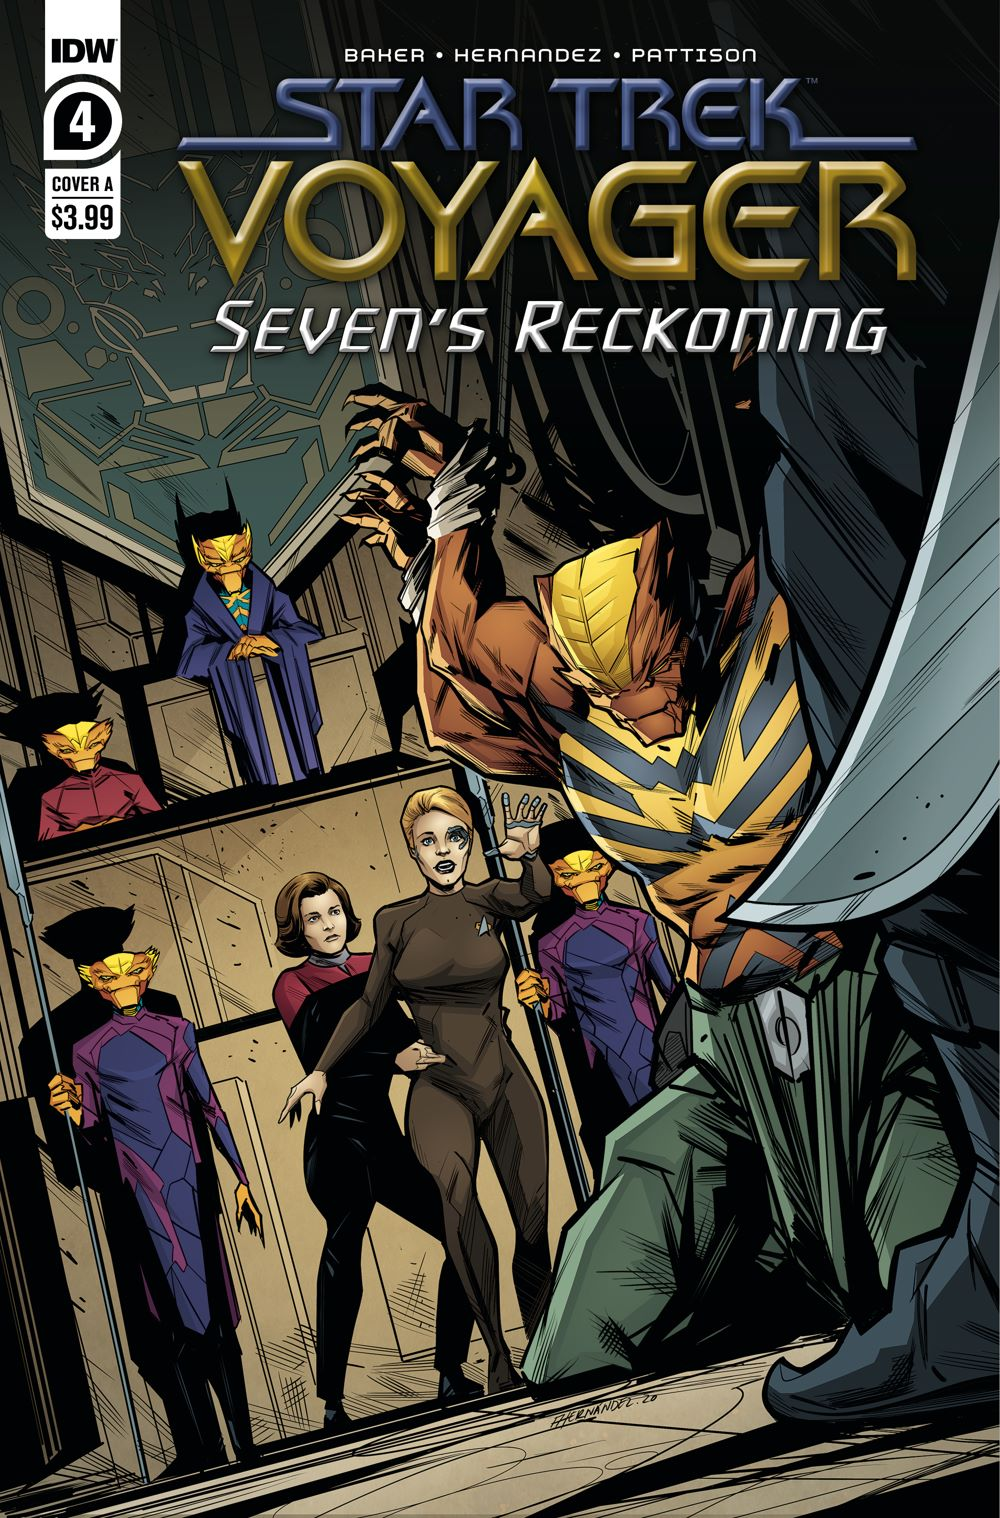 ST_Voyager_SR04-coverA ComicList: IDW Publishing New Releases for 02/10/2021